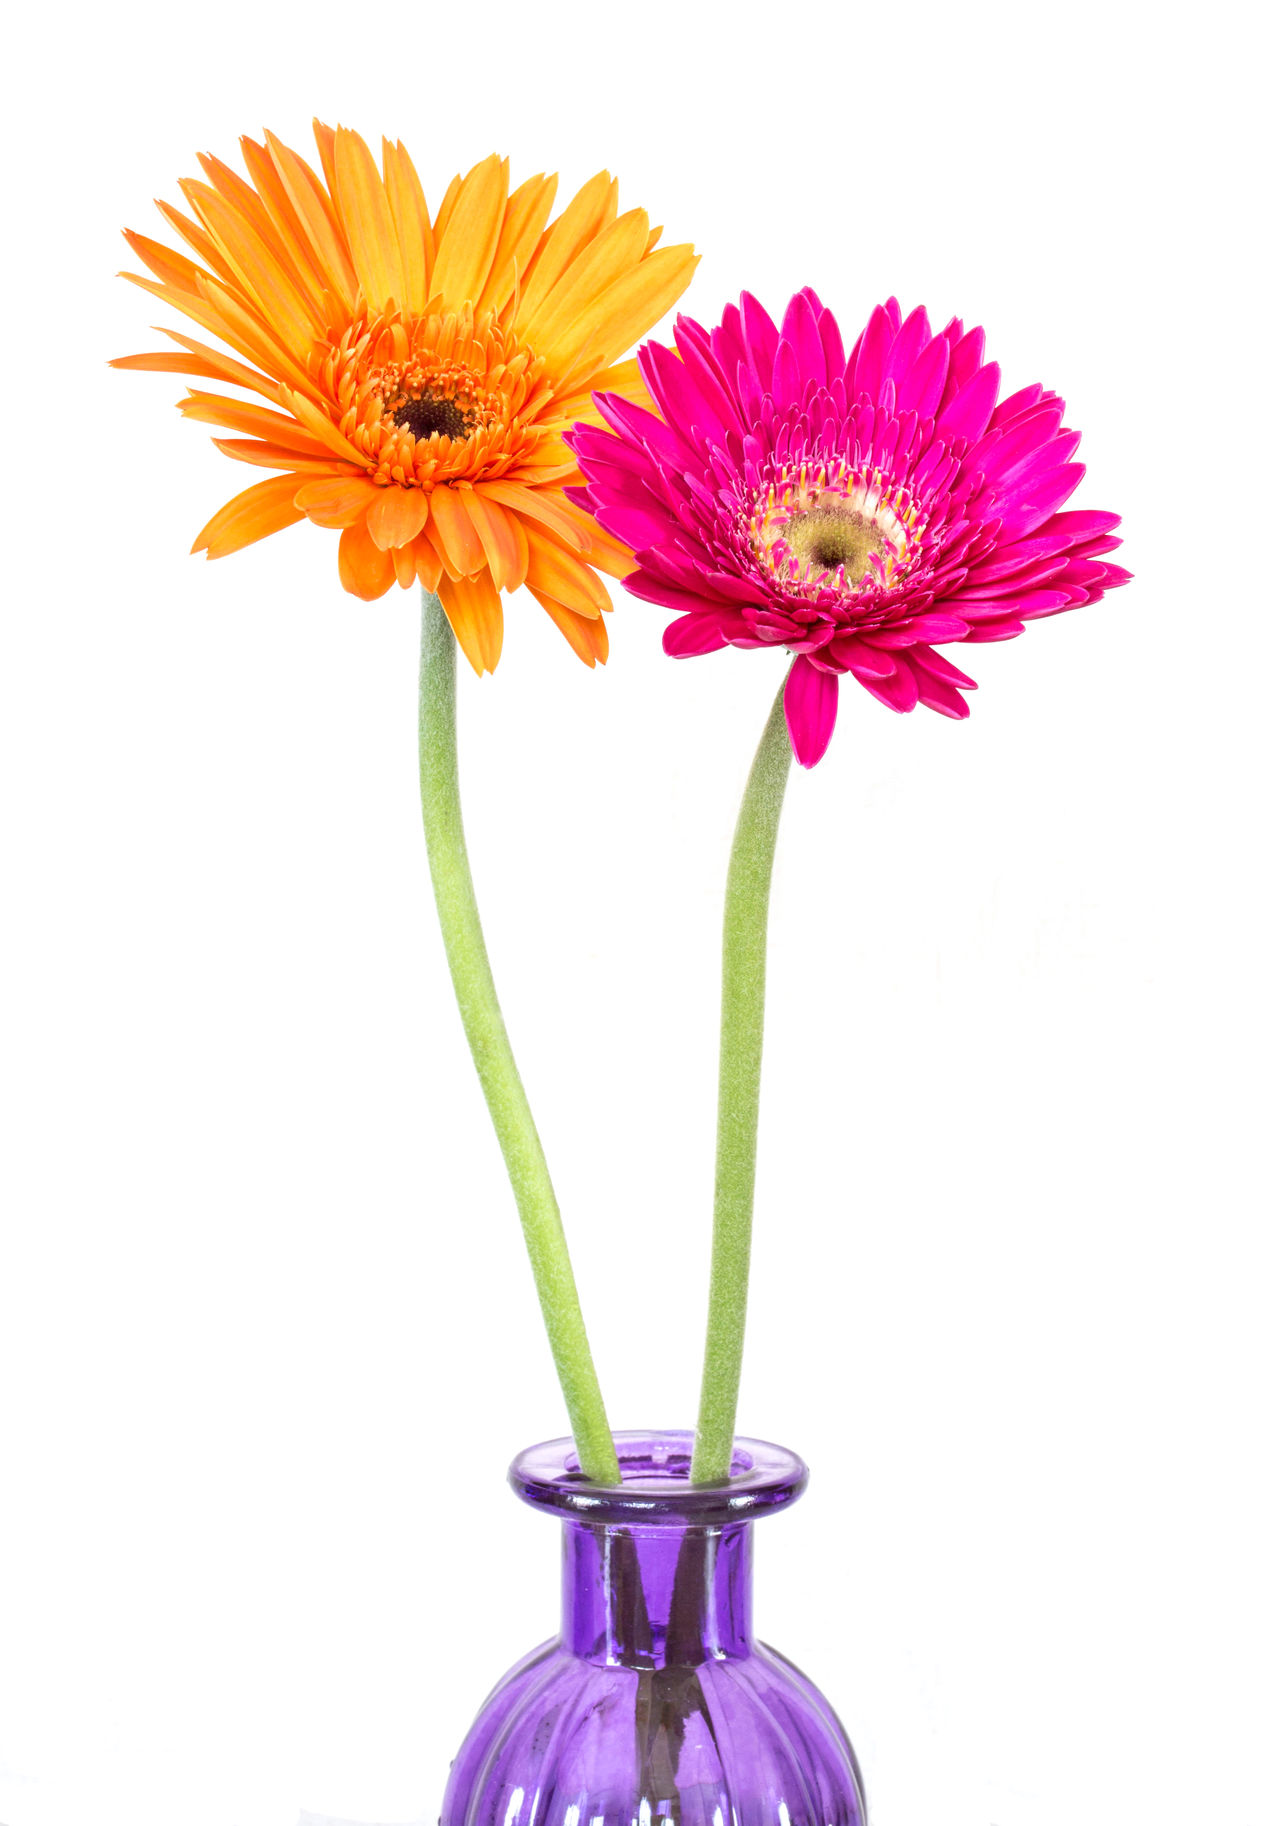 Gerbera daisy isolated on white Beautiful Beauty In Nature Close-up Colorfull Flower Flower Head Fragility Freshness Gerbera Daisy Nature No People Studio Shot White Background